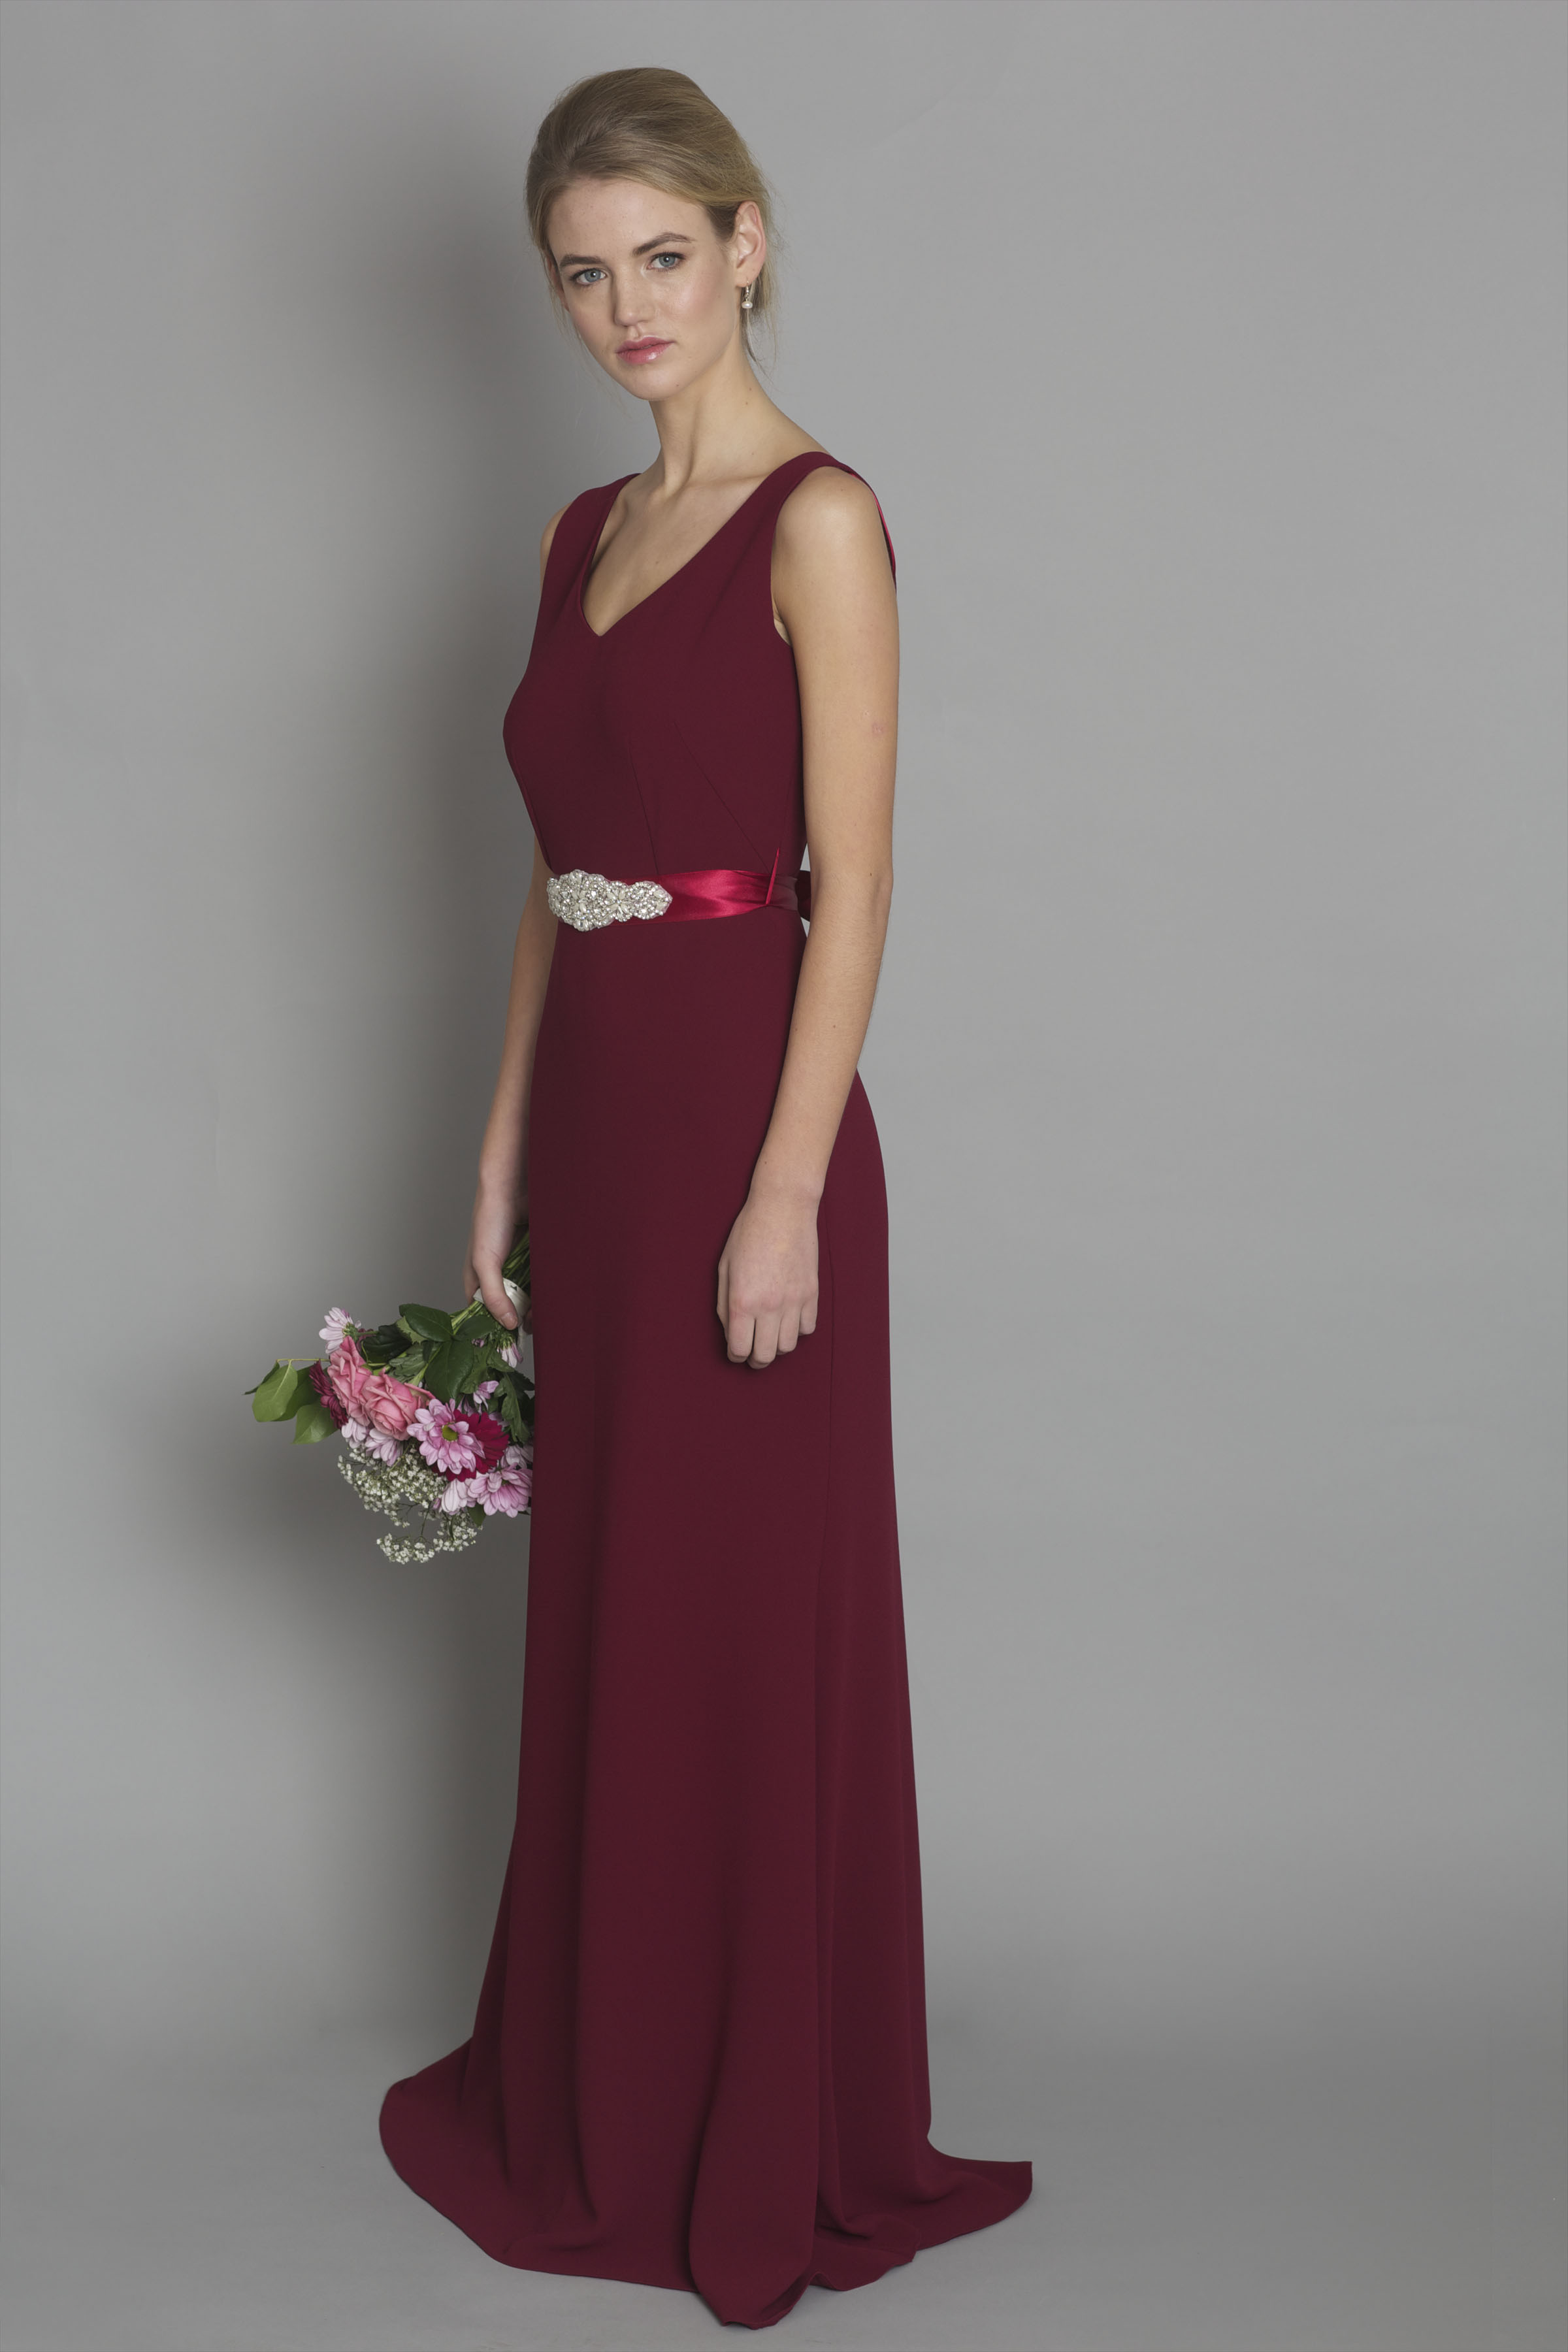 Dublin bridesmaid dresses image collections braidsmaid dress dublin bridesmaid dresses vosoi mulberry dc1179 bridesmaid evening u0026 debs dresses from dresscode ombrellifo image collections ombrellifo Choice Image